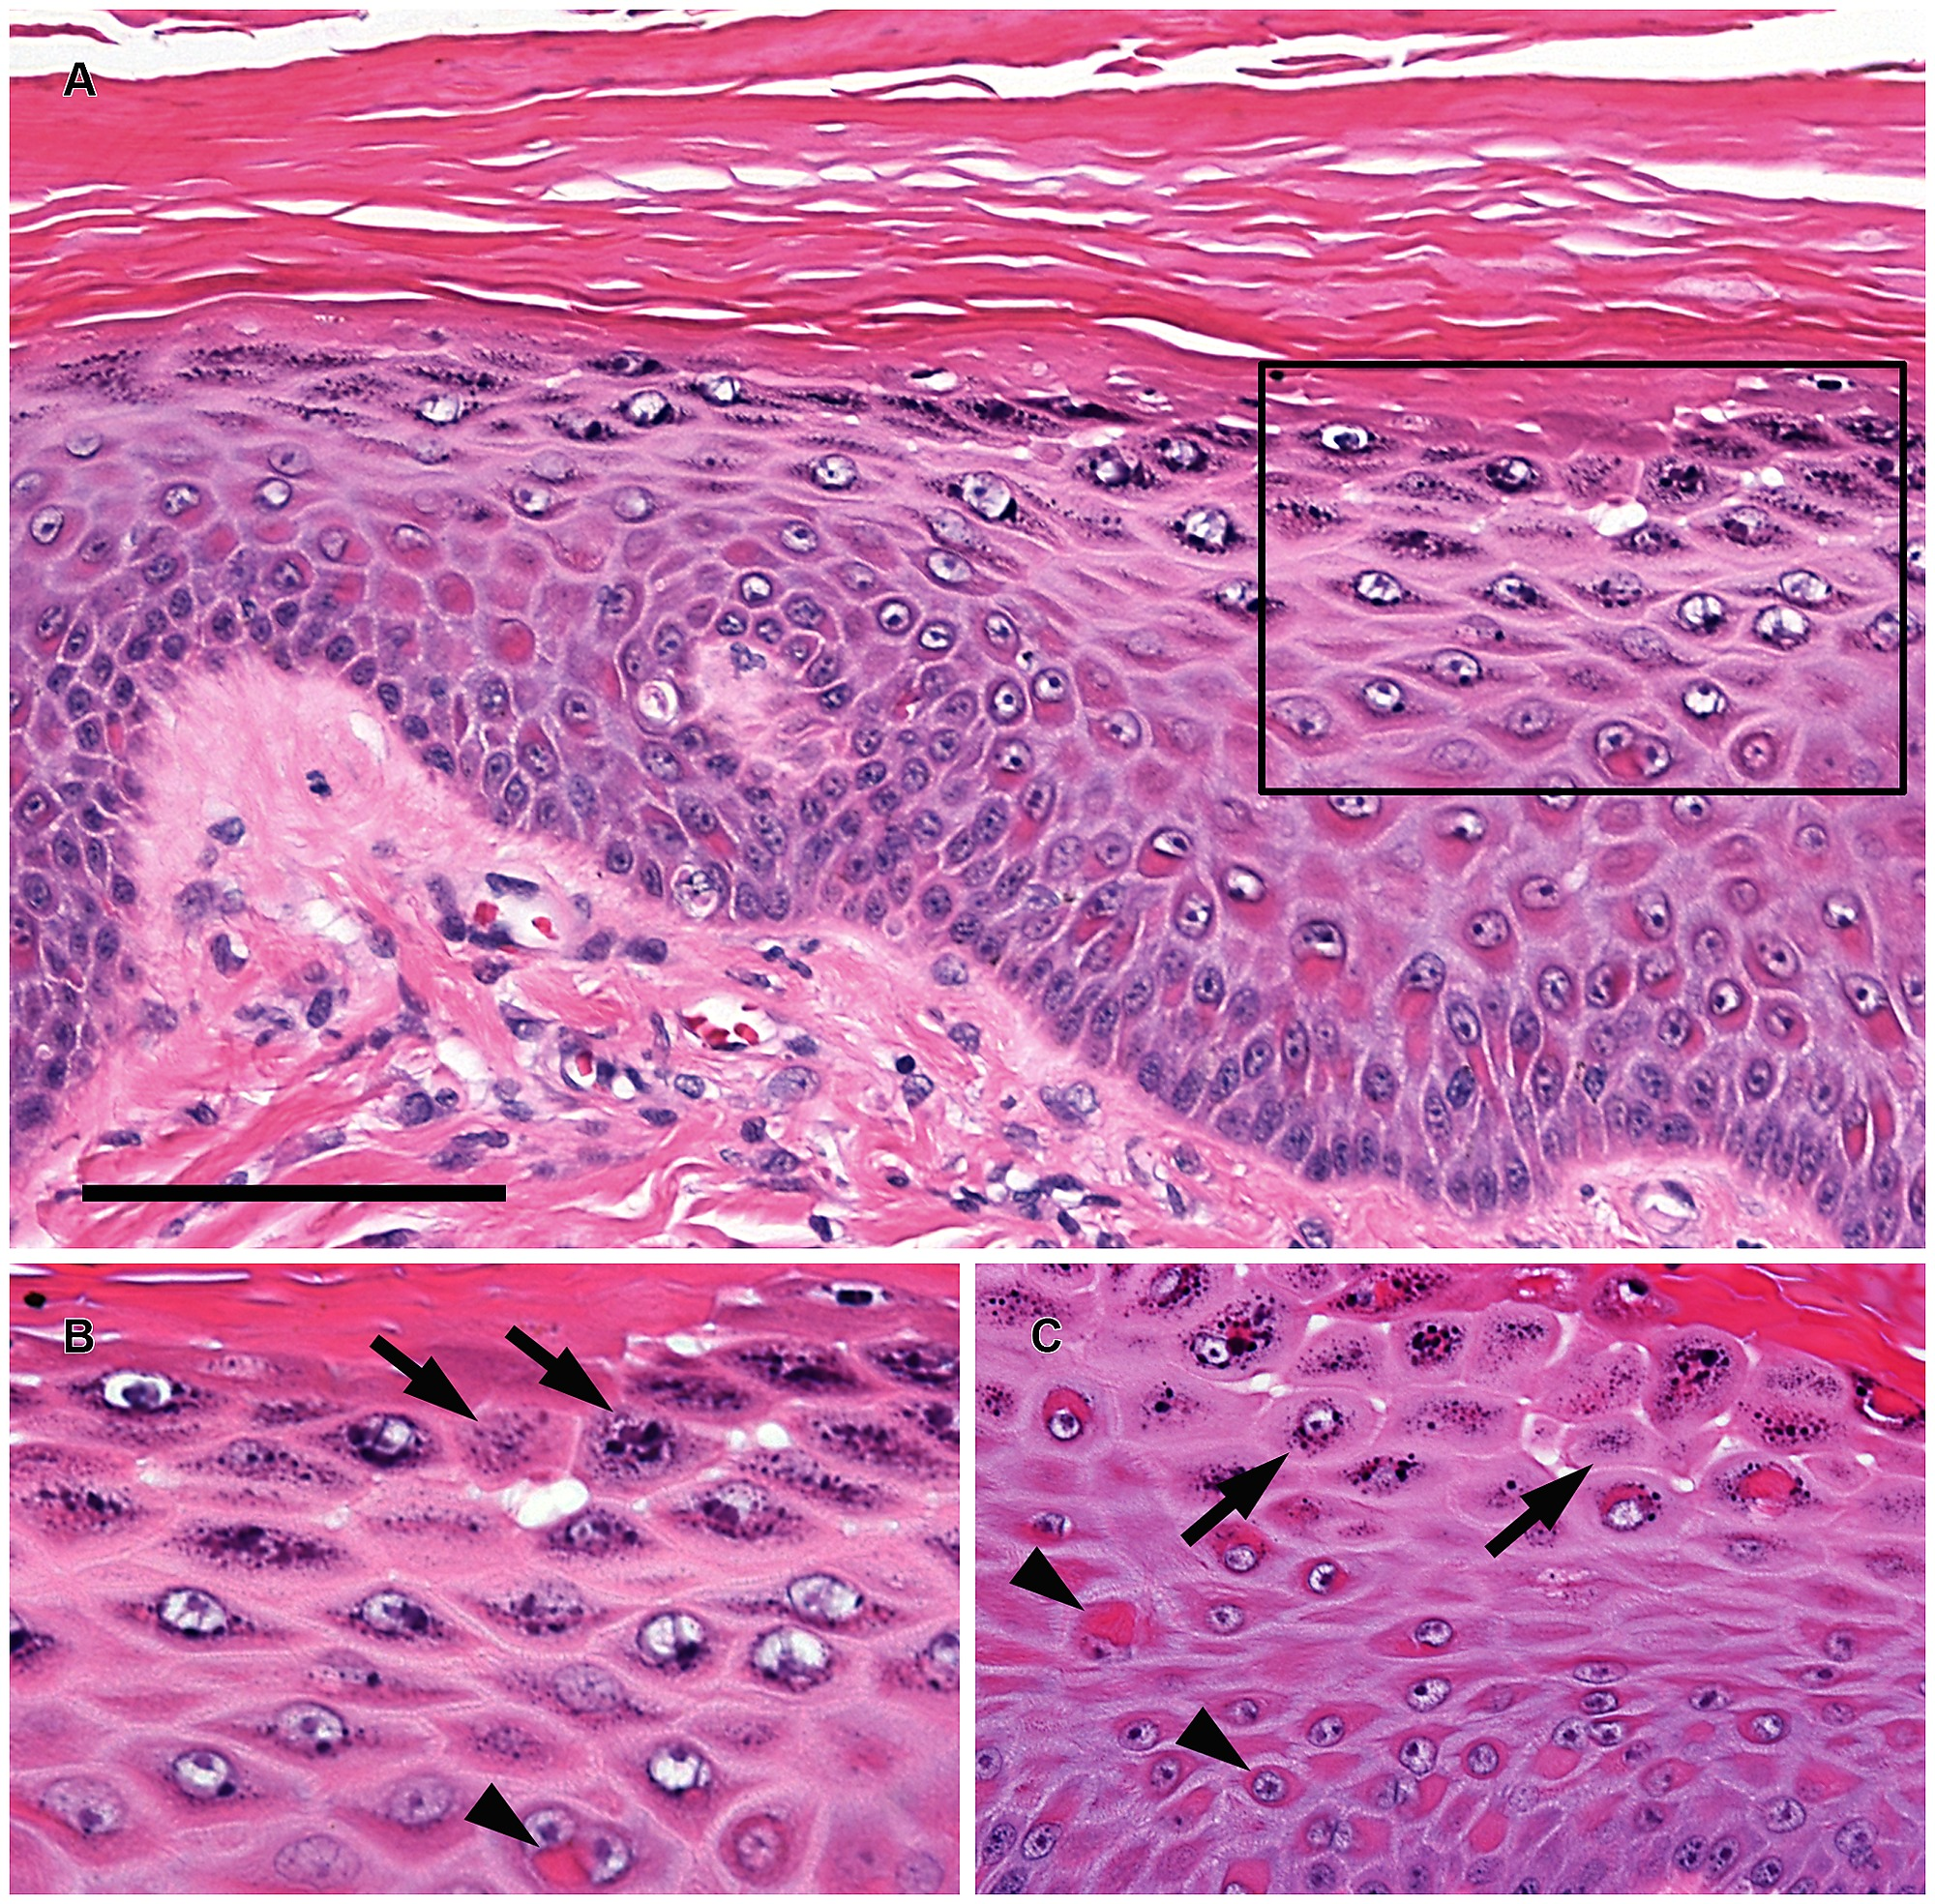 Histopathology findings for 3-month-old puppies with